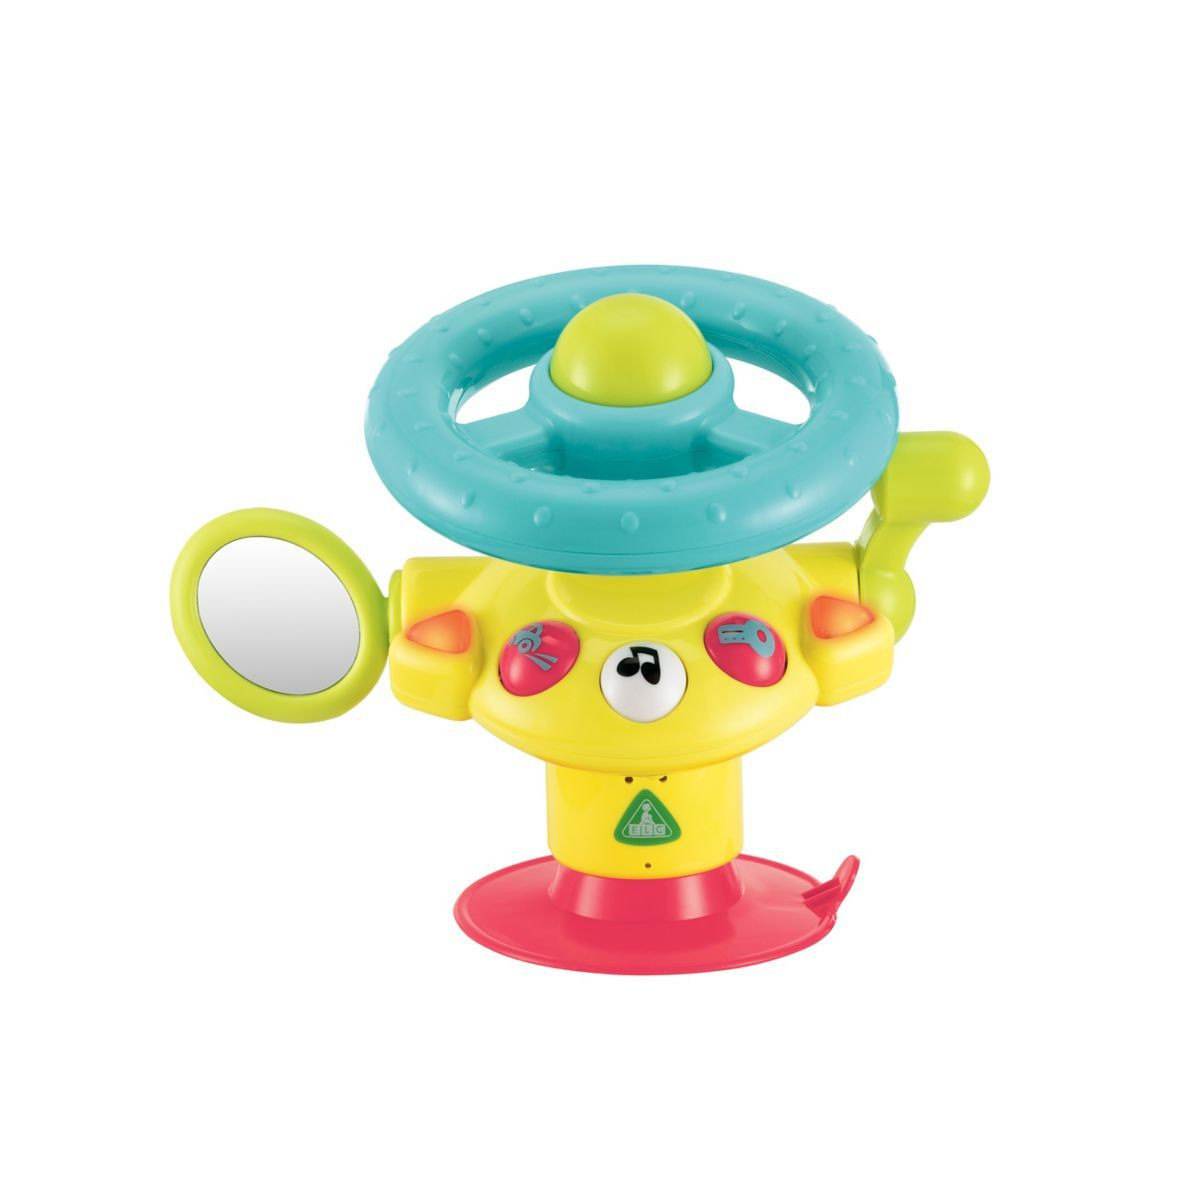 Image result for elc car high chair toy